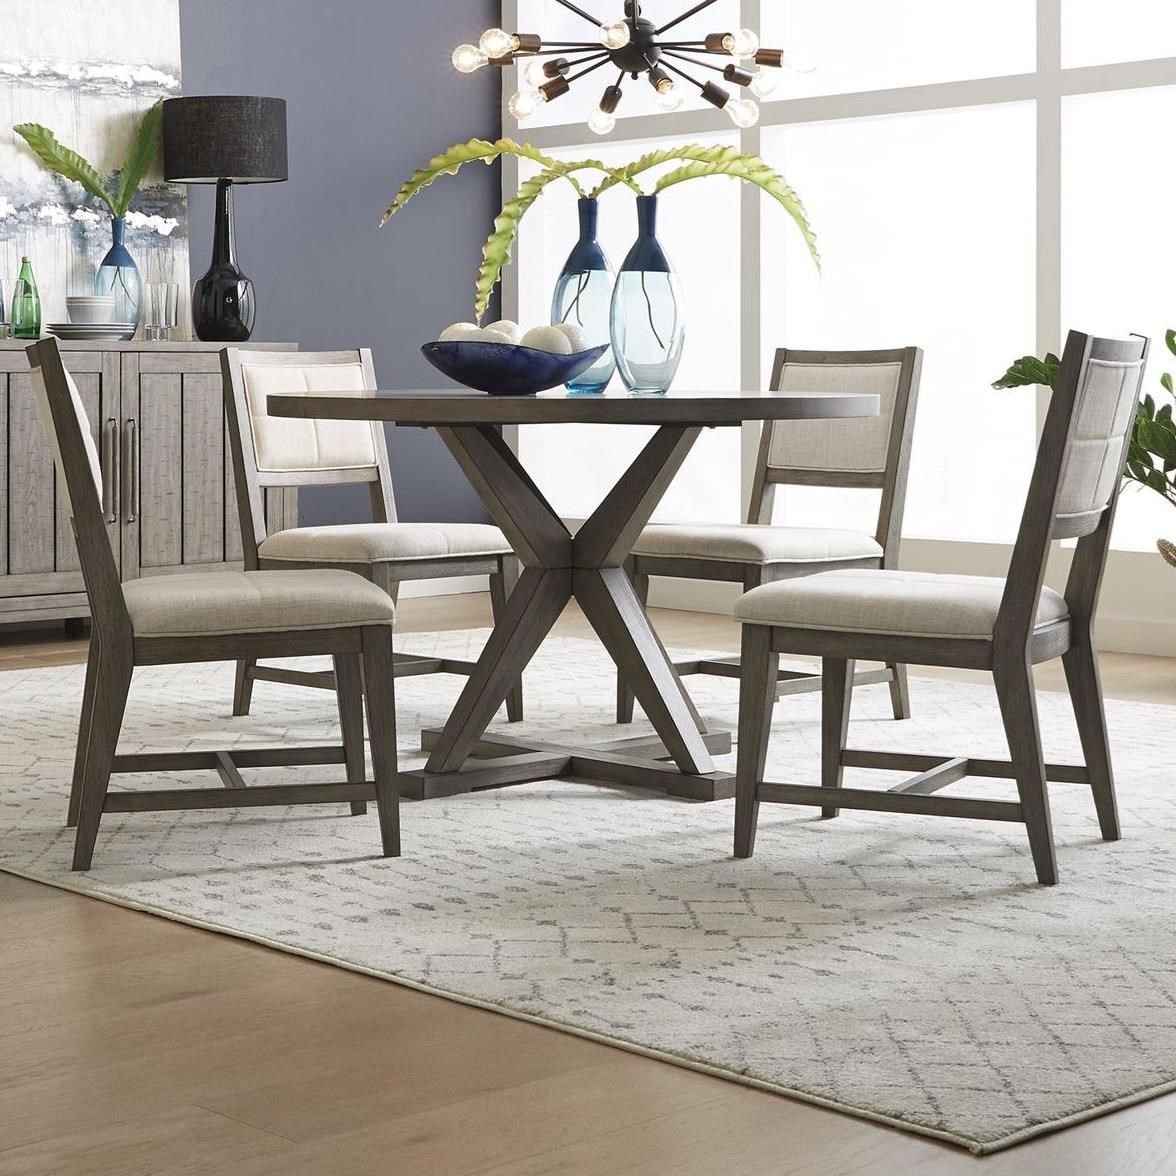 Crescent Creek 5-Piece Pedestal Table Set by Libby at Walker's Furniture